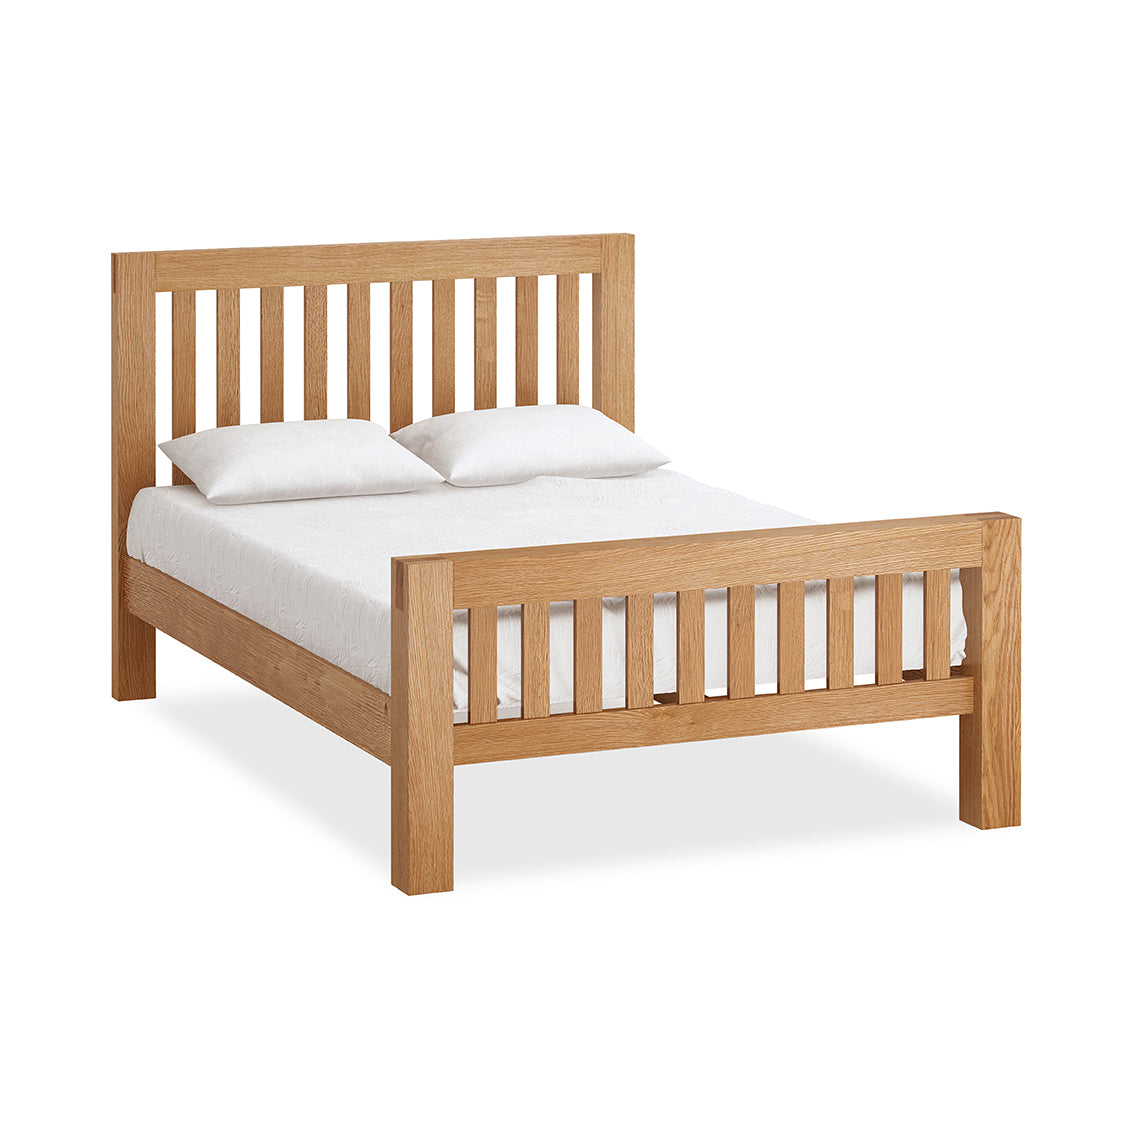 Montreal Country Oak Beds - Double, King & Superking